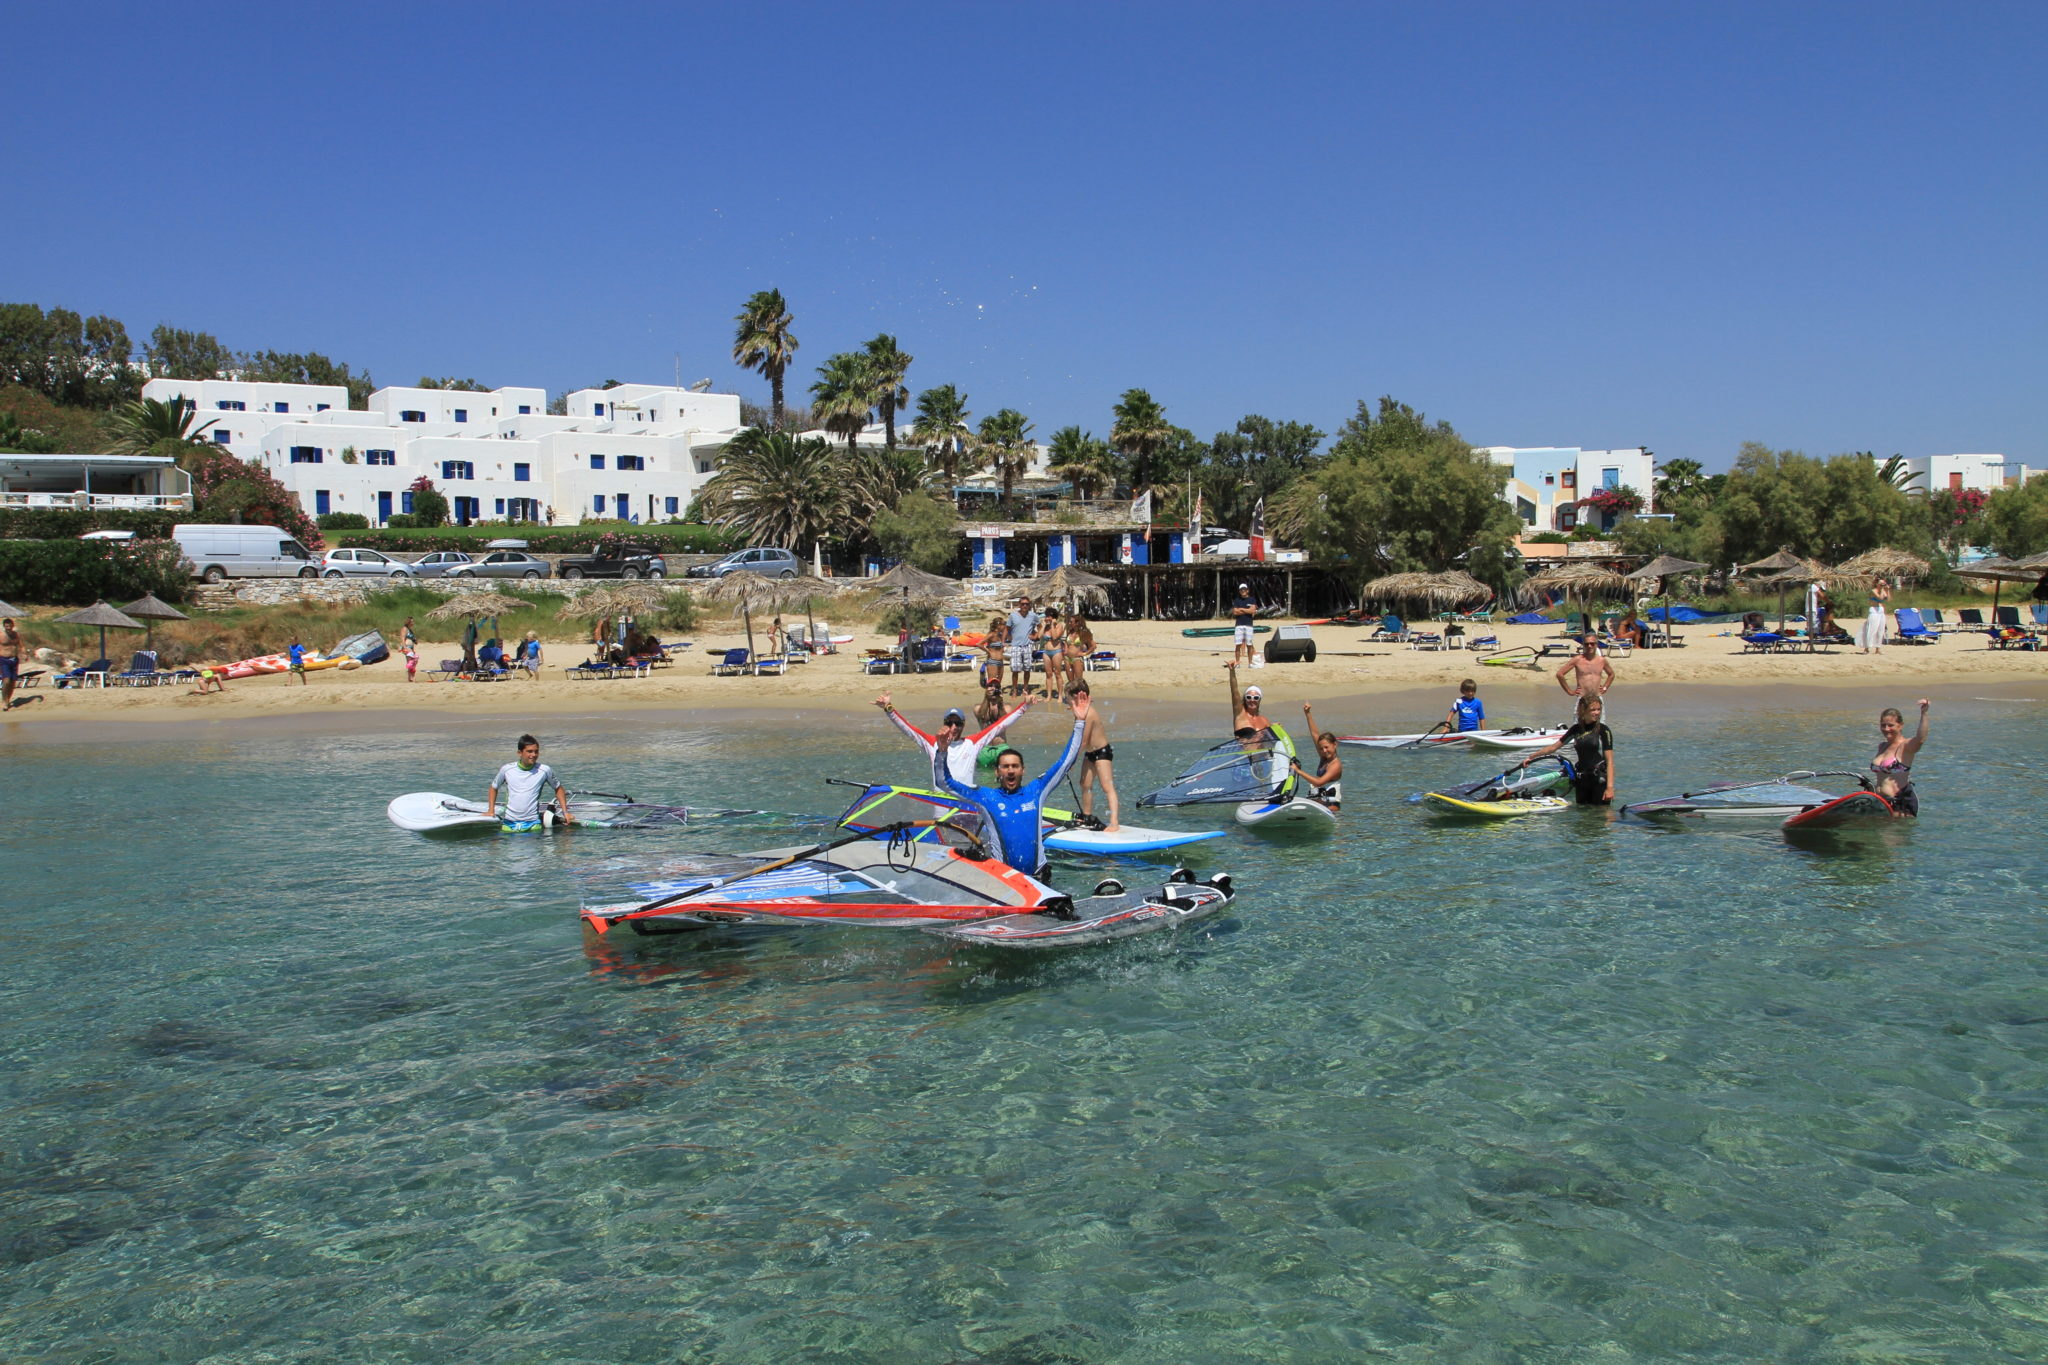 PAROS WINDSURF CENTER